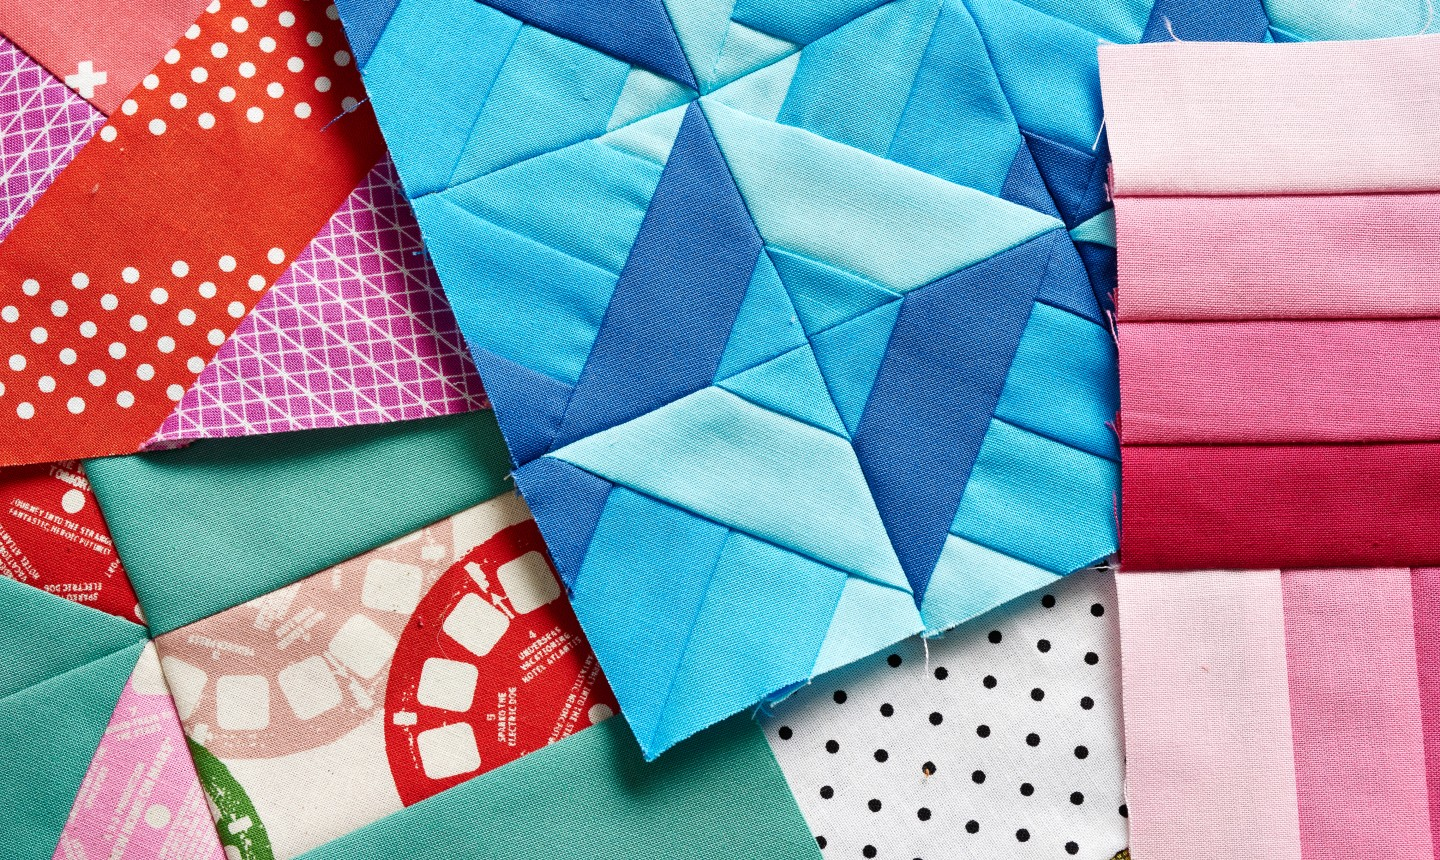 layer cake quilt blocks